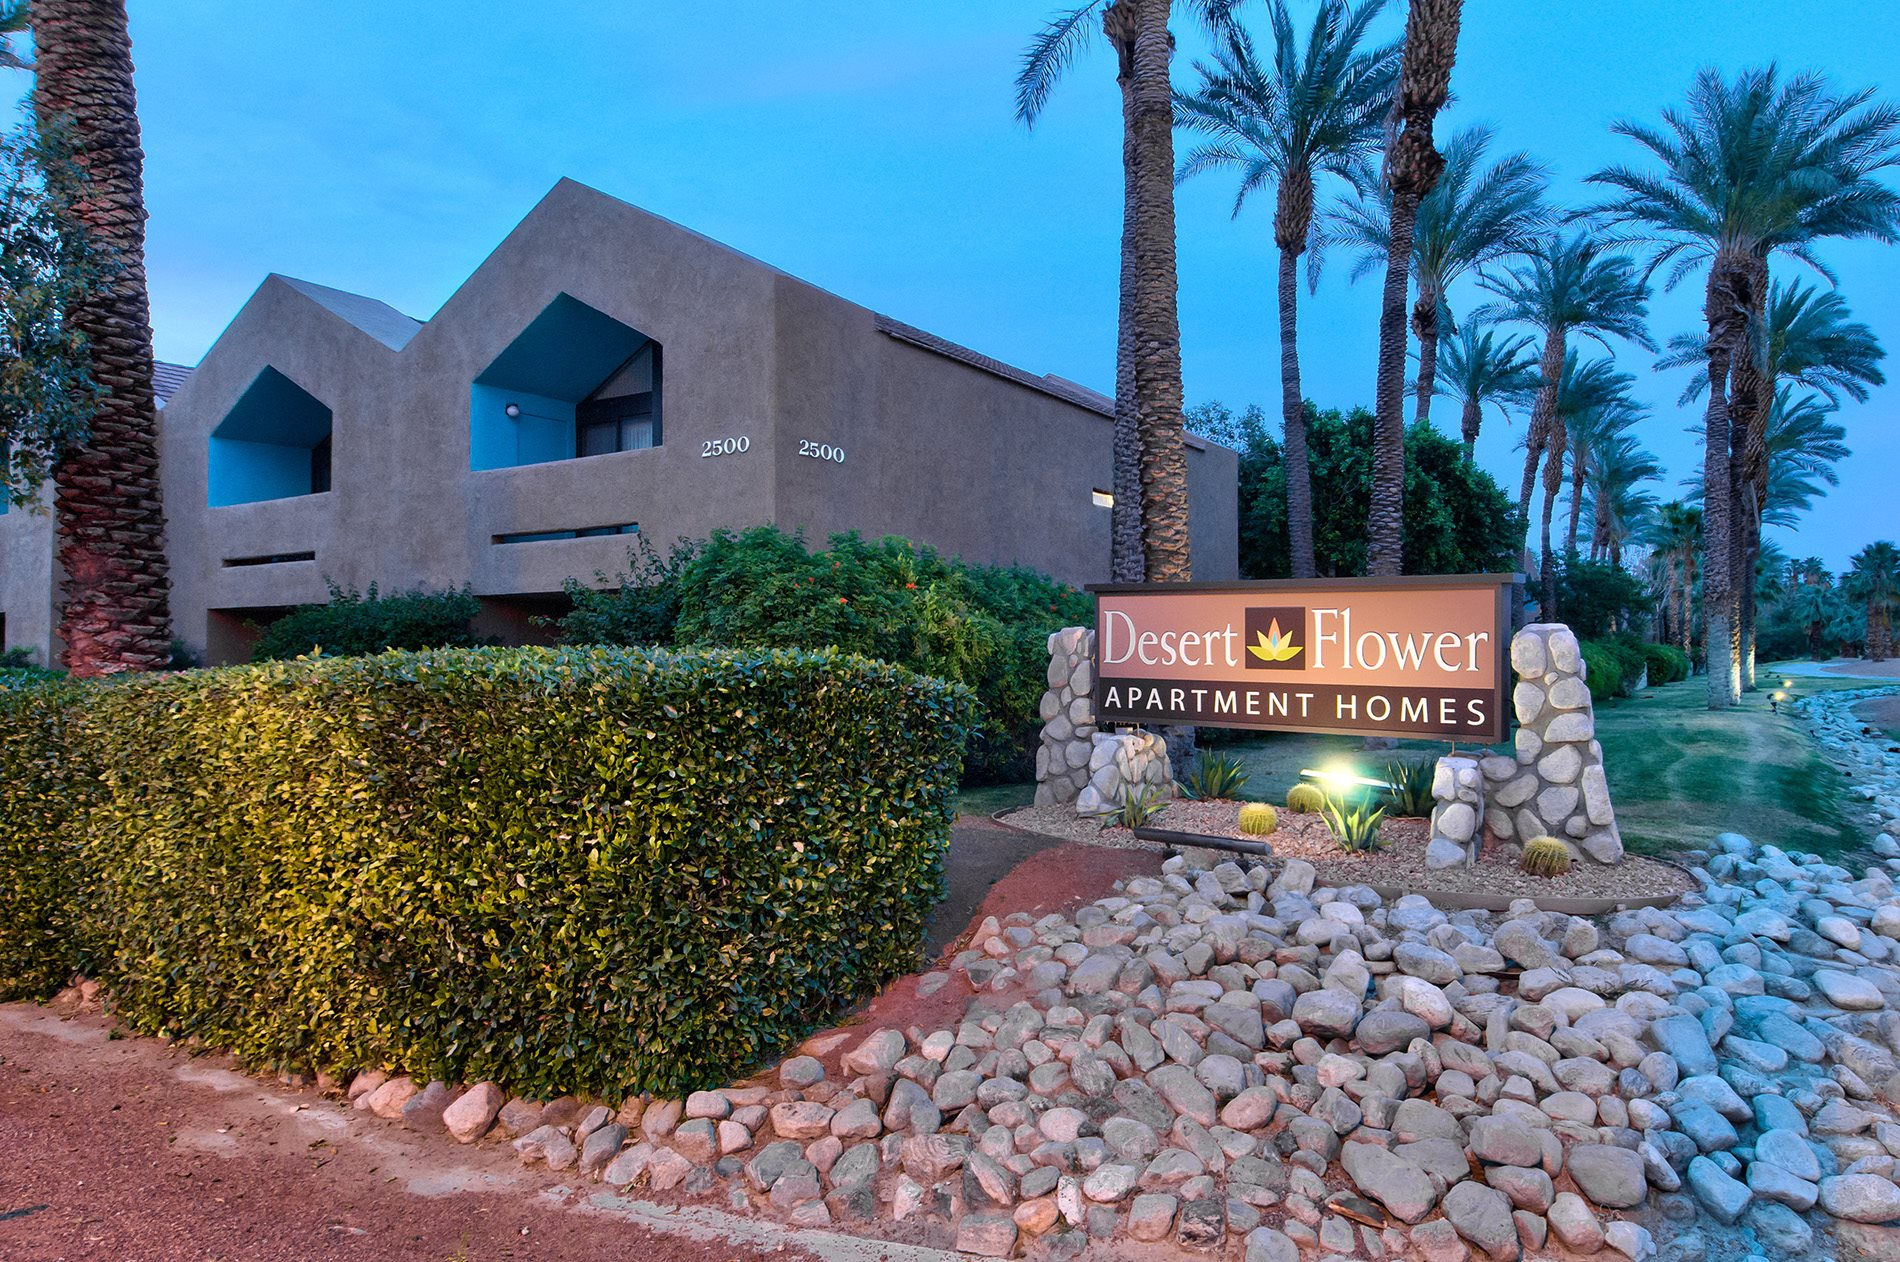 Photos and video of desert flower apartment homes in palm springs ca palm springs photogallery 12 mightylinksfo